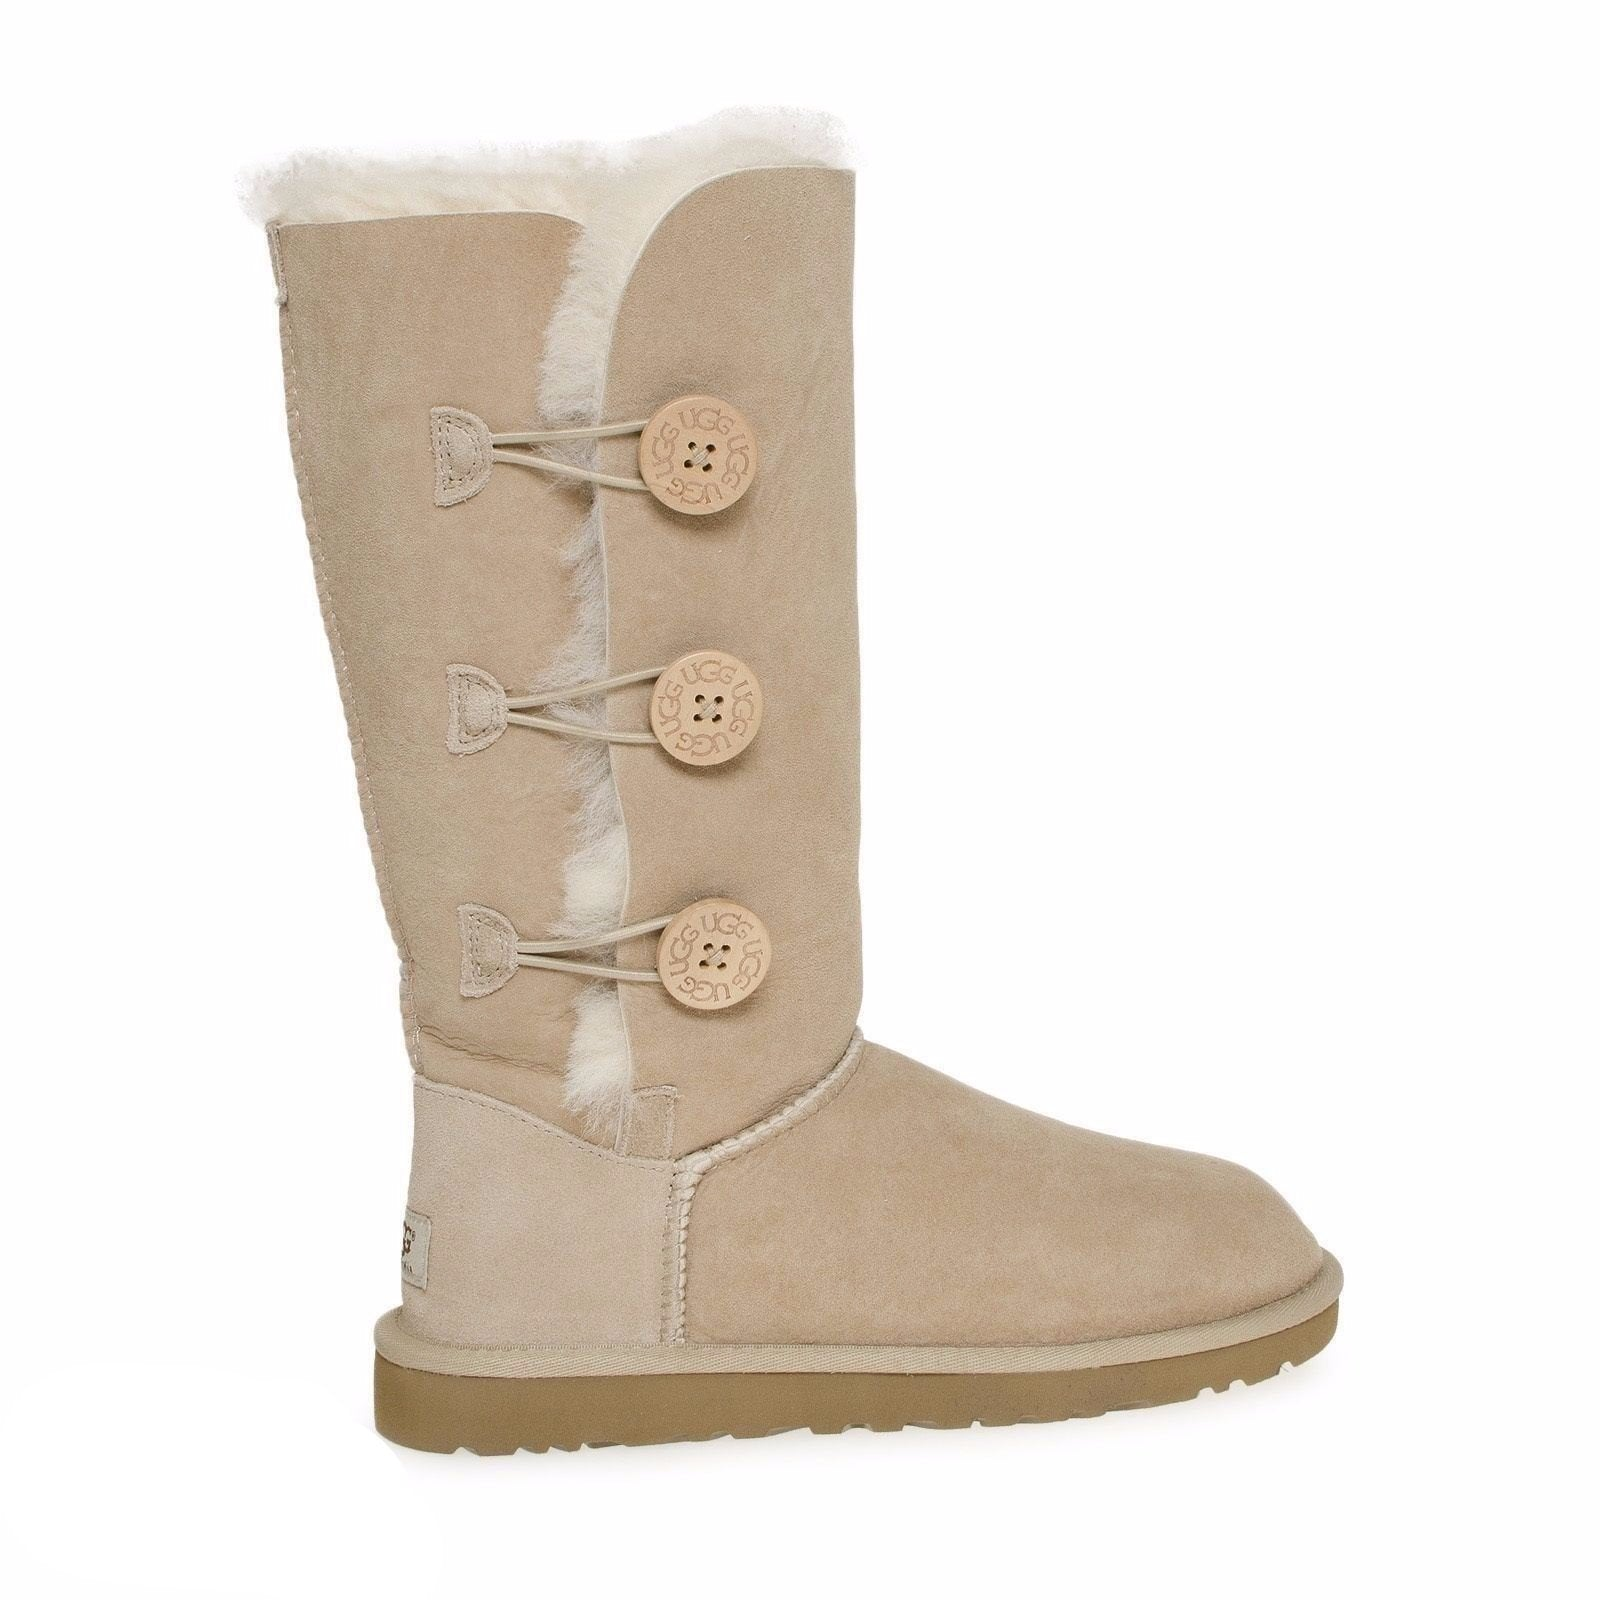 ugg bailey button triplet sand boots mycozyboots rh mcozyboots com